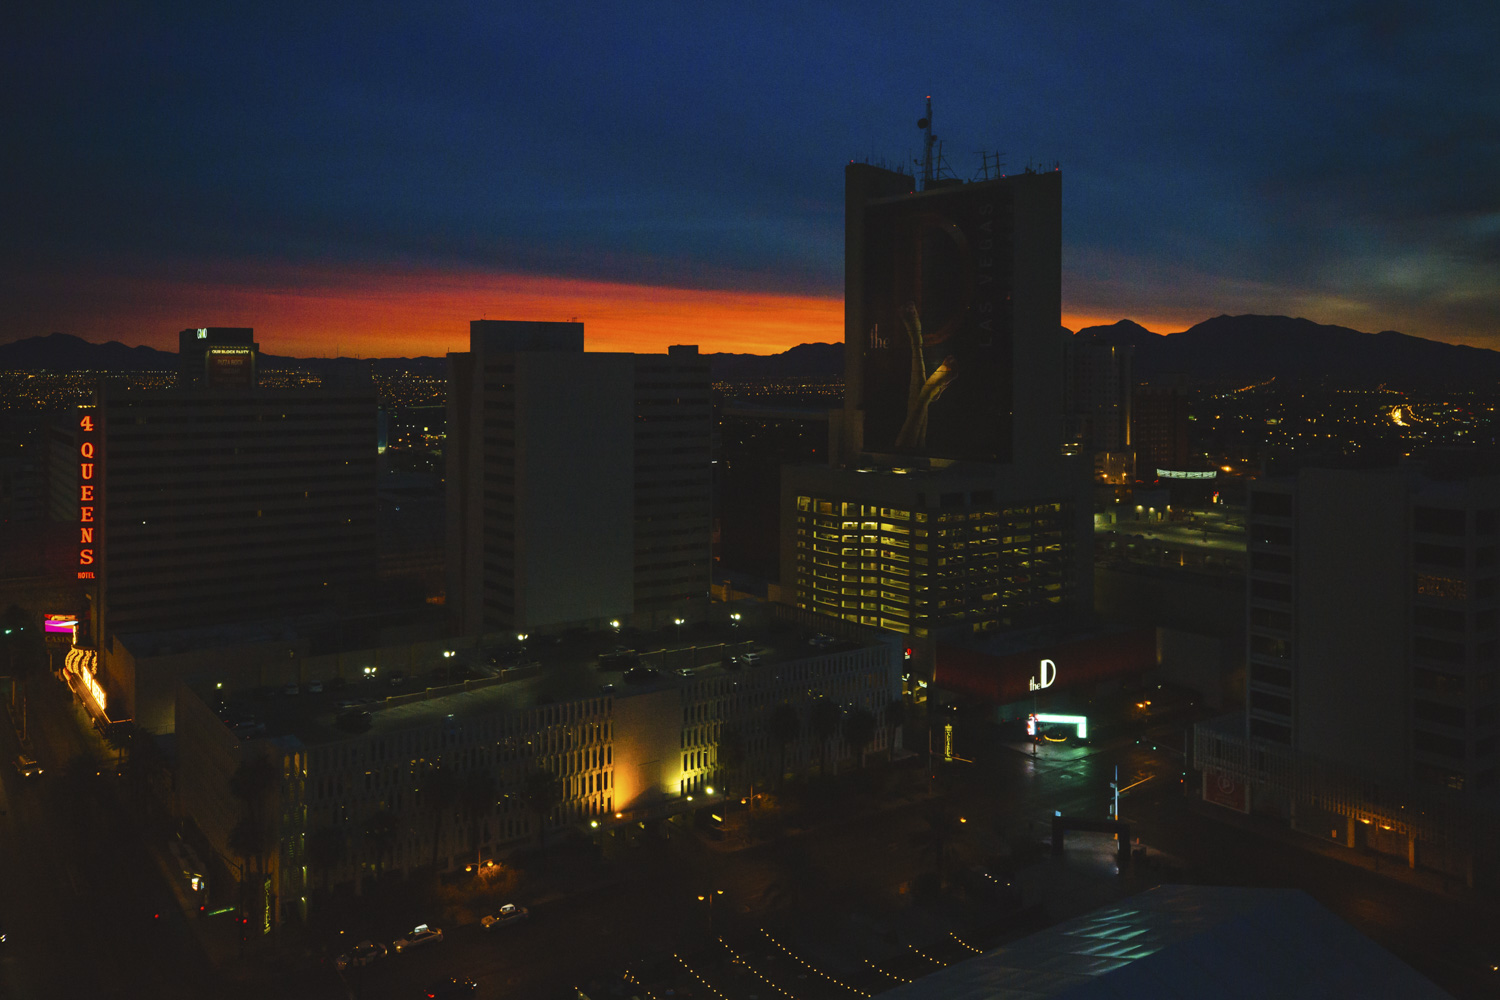 "Watch the sun rise from the Golden Nugget Hotel. Las Vegas may be best known for its sinful side but there's more to this modern metropolis than losing your shirt. Not the gambling type? A tour of the city's faded relics at The Neon Museum is great for both history buffs and Instagramming your heart out. Get same-day discount tickets to check out one (or more) of Cirque Du Soleil's seven different local shows for a masterful performance. Vegas is a hotbed of buzz-worthy eateries that don't involve buffets, so do your tummy a favor try the melt-in-your-mouth pork belly buns at Momofuku and don't even think about leaving before digging into the neighboring Milk Bar's cereal milk ice cream with cornflake crunch. It really does taste just like the milk at the bottom of a bowl of cornflakes! And while you can no longer catch Britney Spears like us, there are countless headlining musical acts in town that redefine the term ""production."" From Flying high down the Fremont Street zip-line to pretending you're in the movies in front of the Bellagio fountains, don't miss out on all Las Vegas has to offer just outside the casinos. (Image: Sunita Martini)"